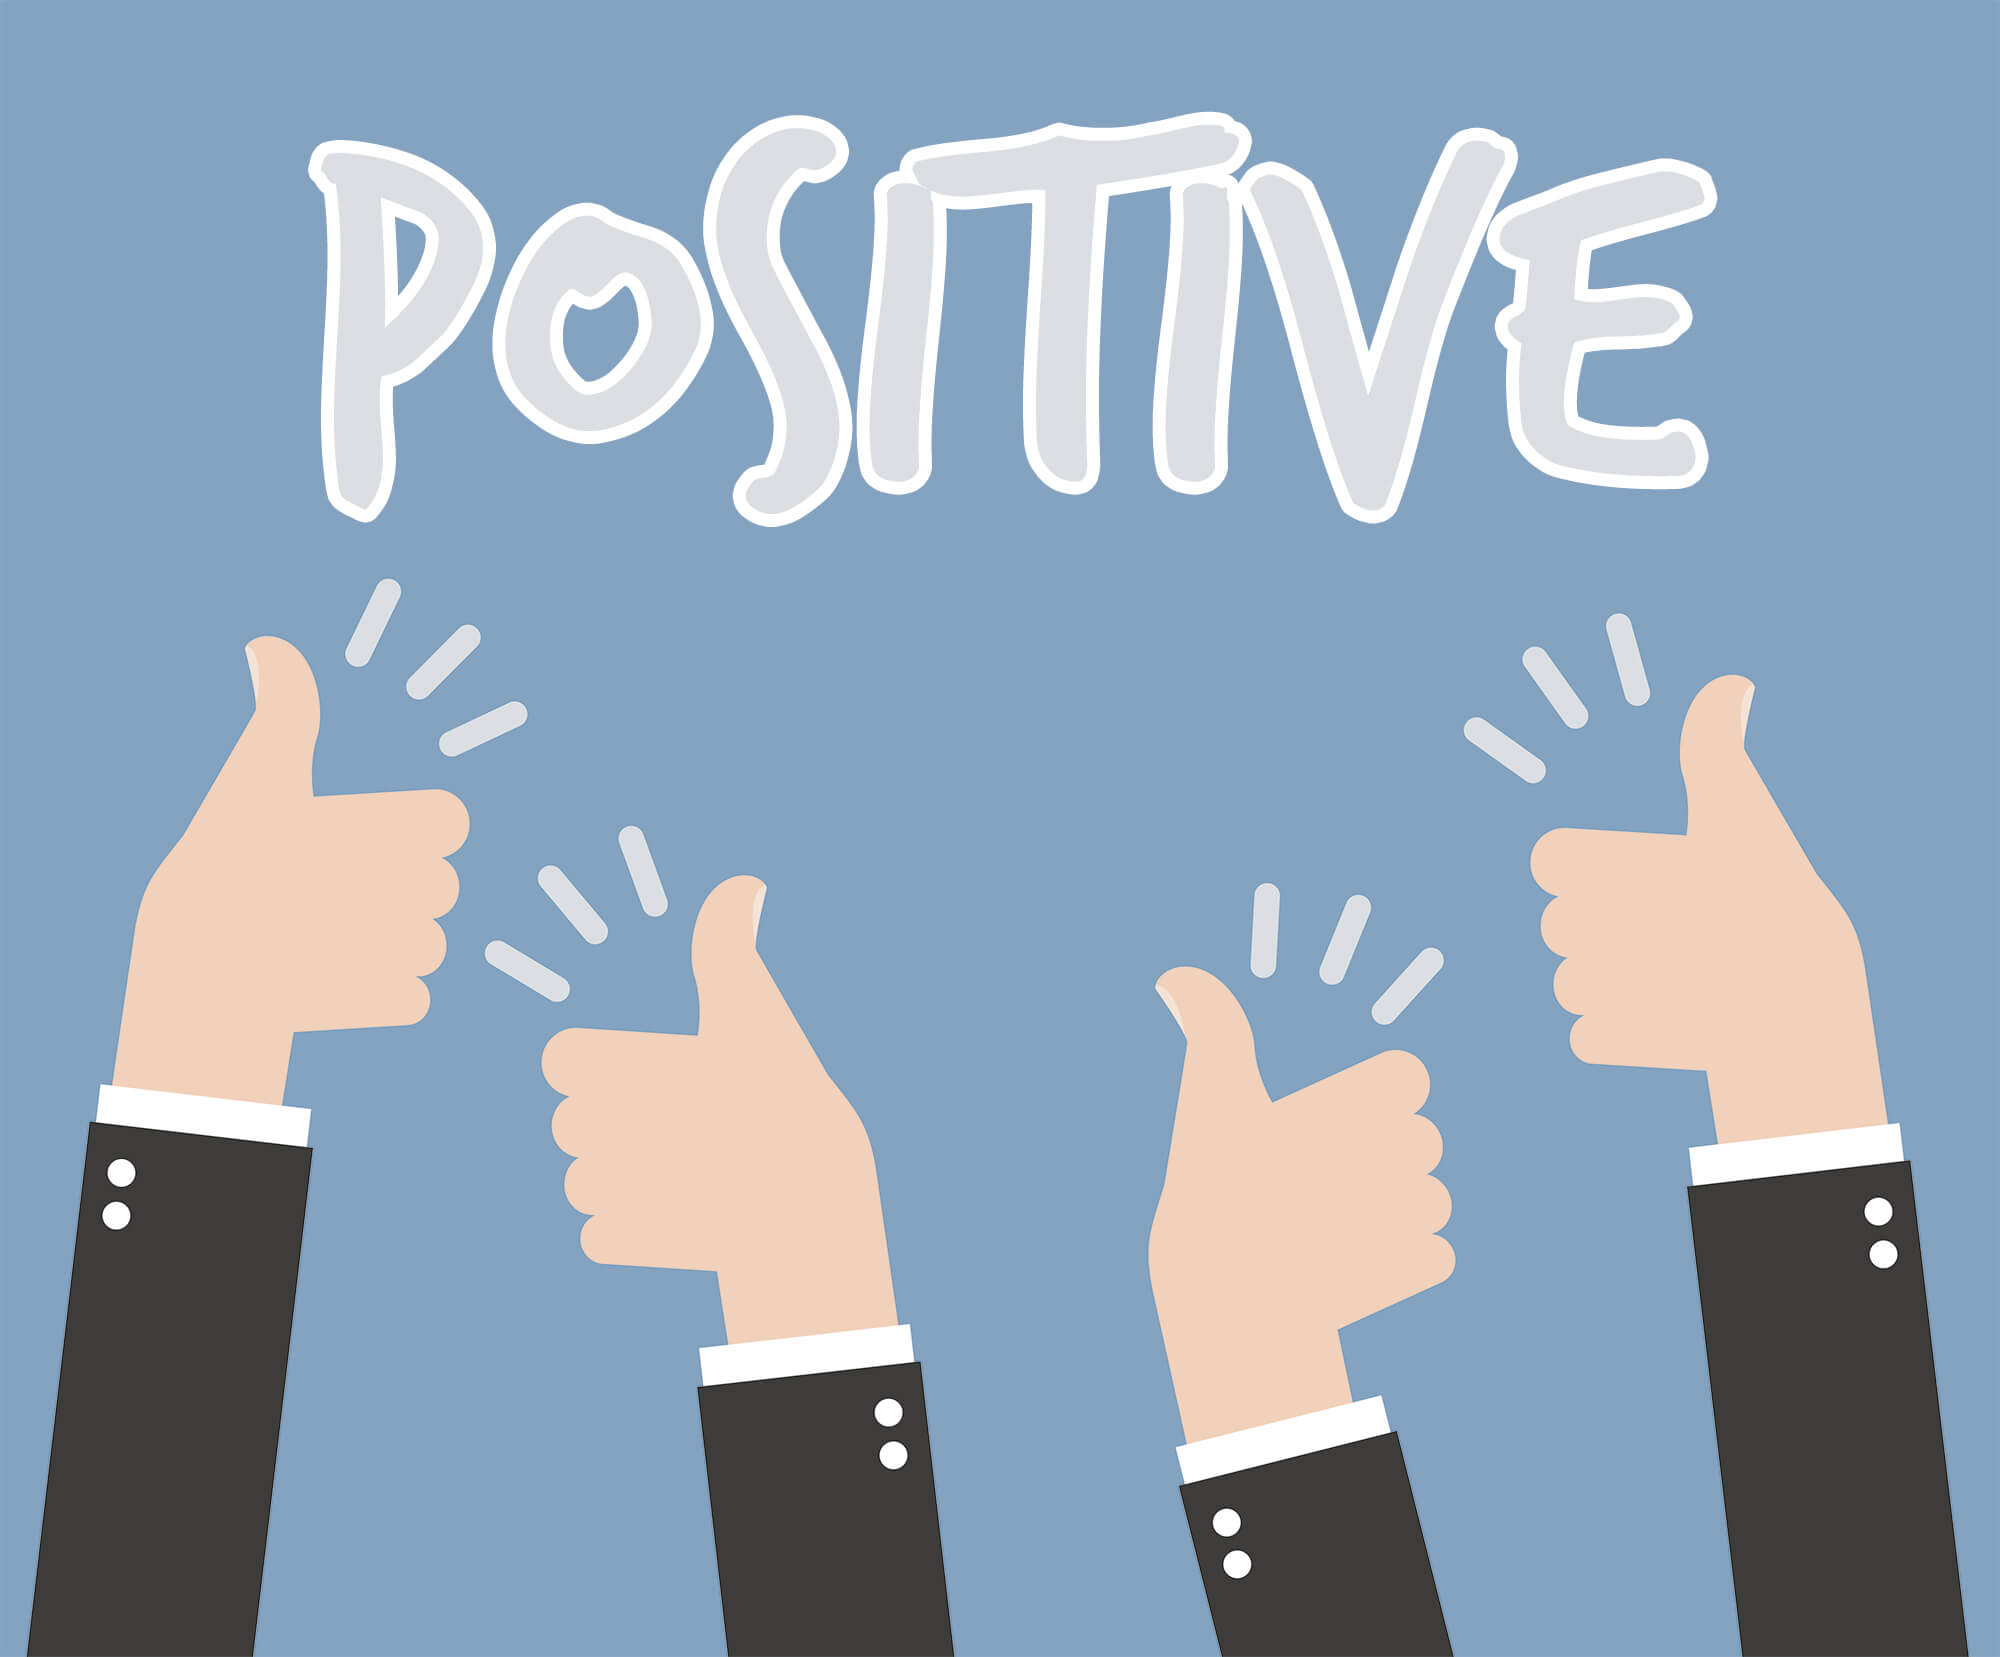 Positive banner with 4 thumbs up